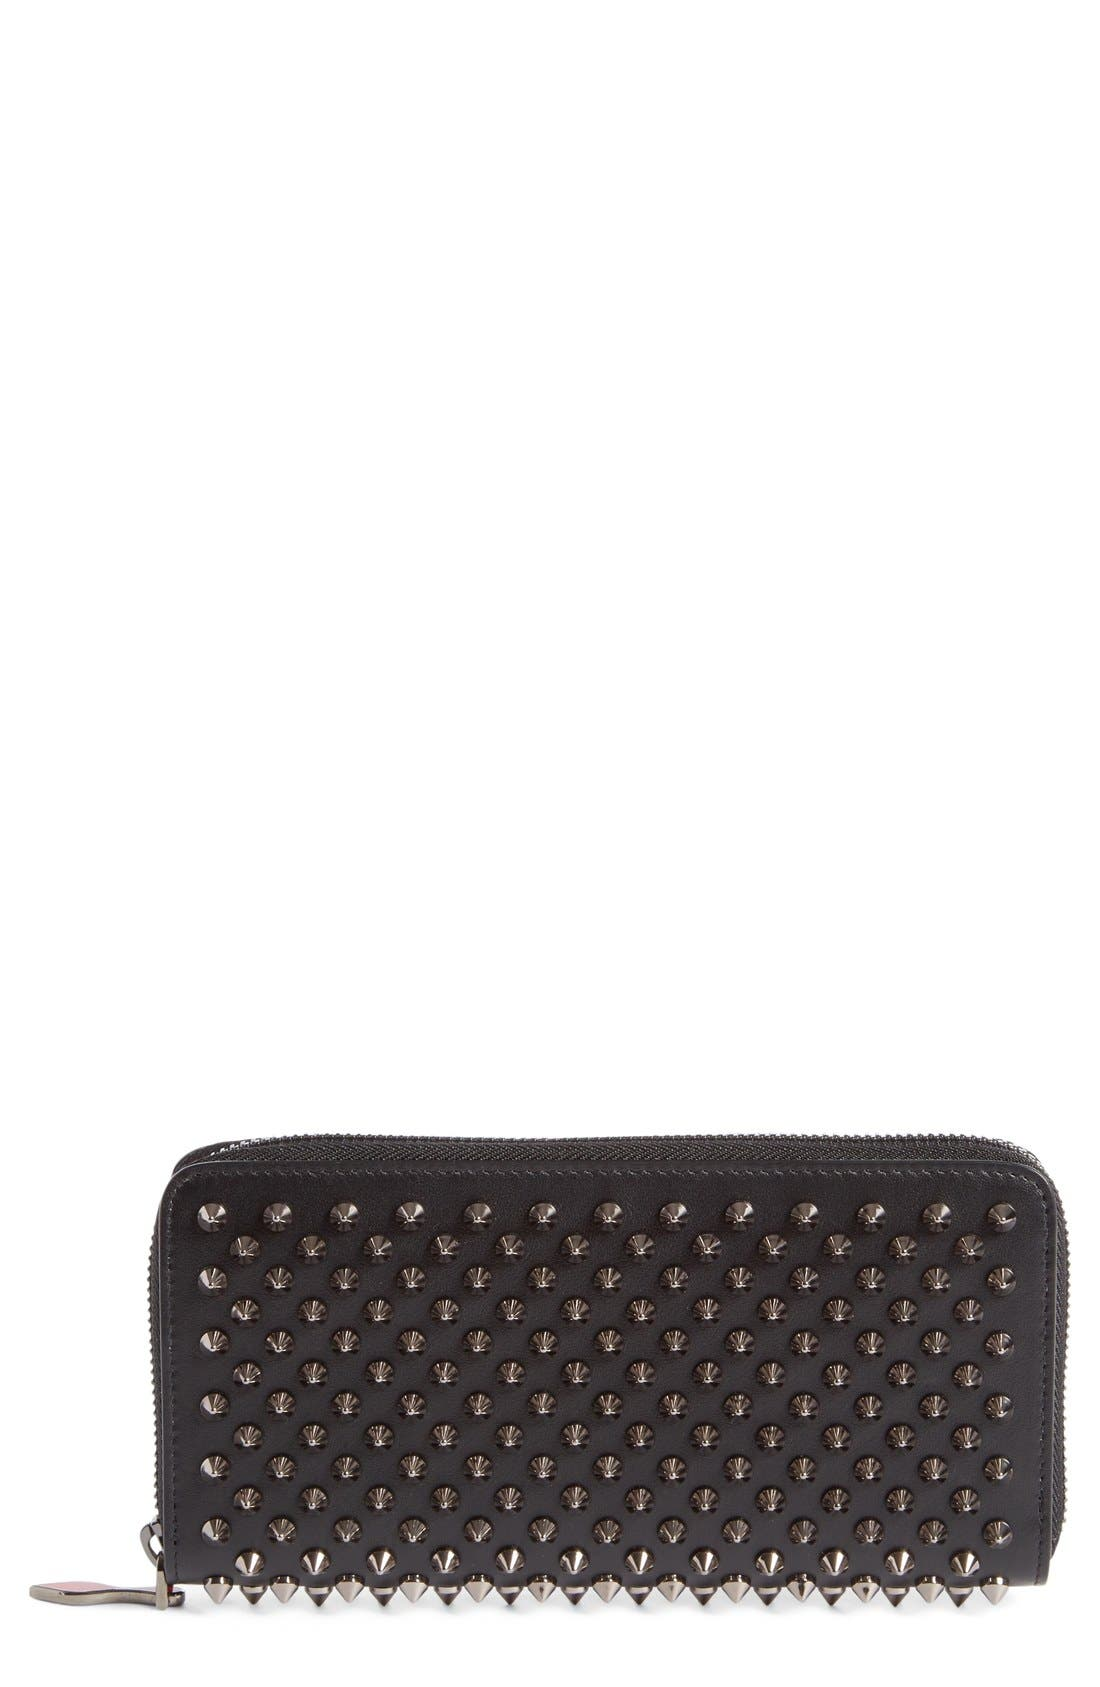 Alternate Image 1 Selected - Christian Louboutin Panettone Spiked Calfskin Wallet